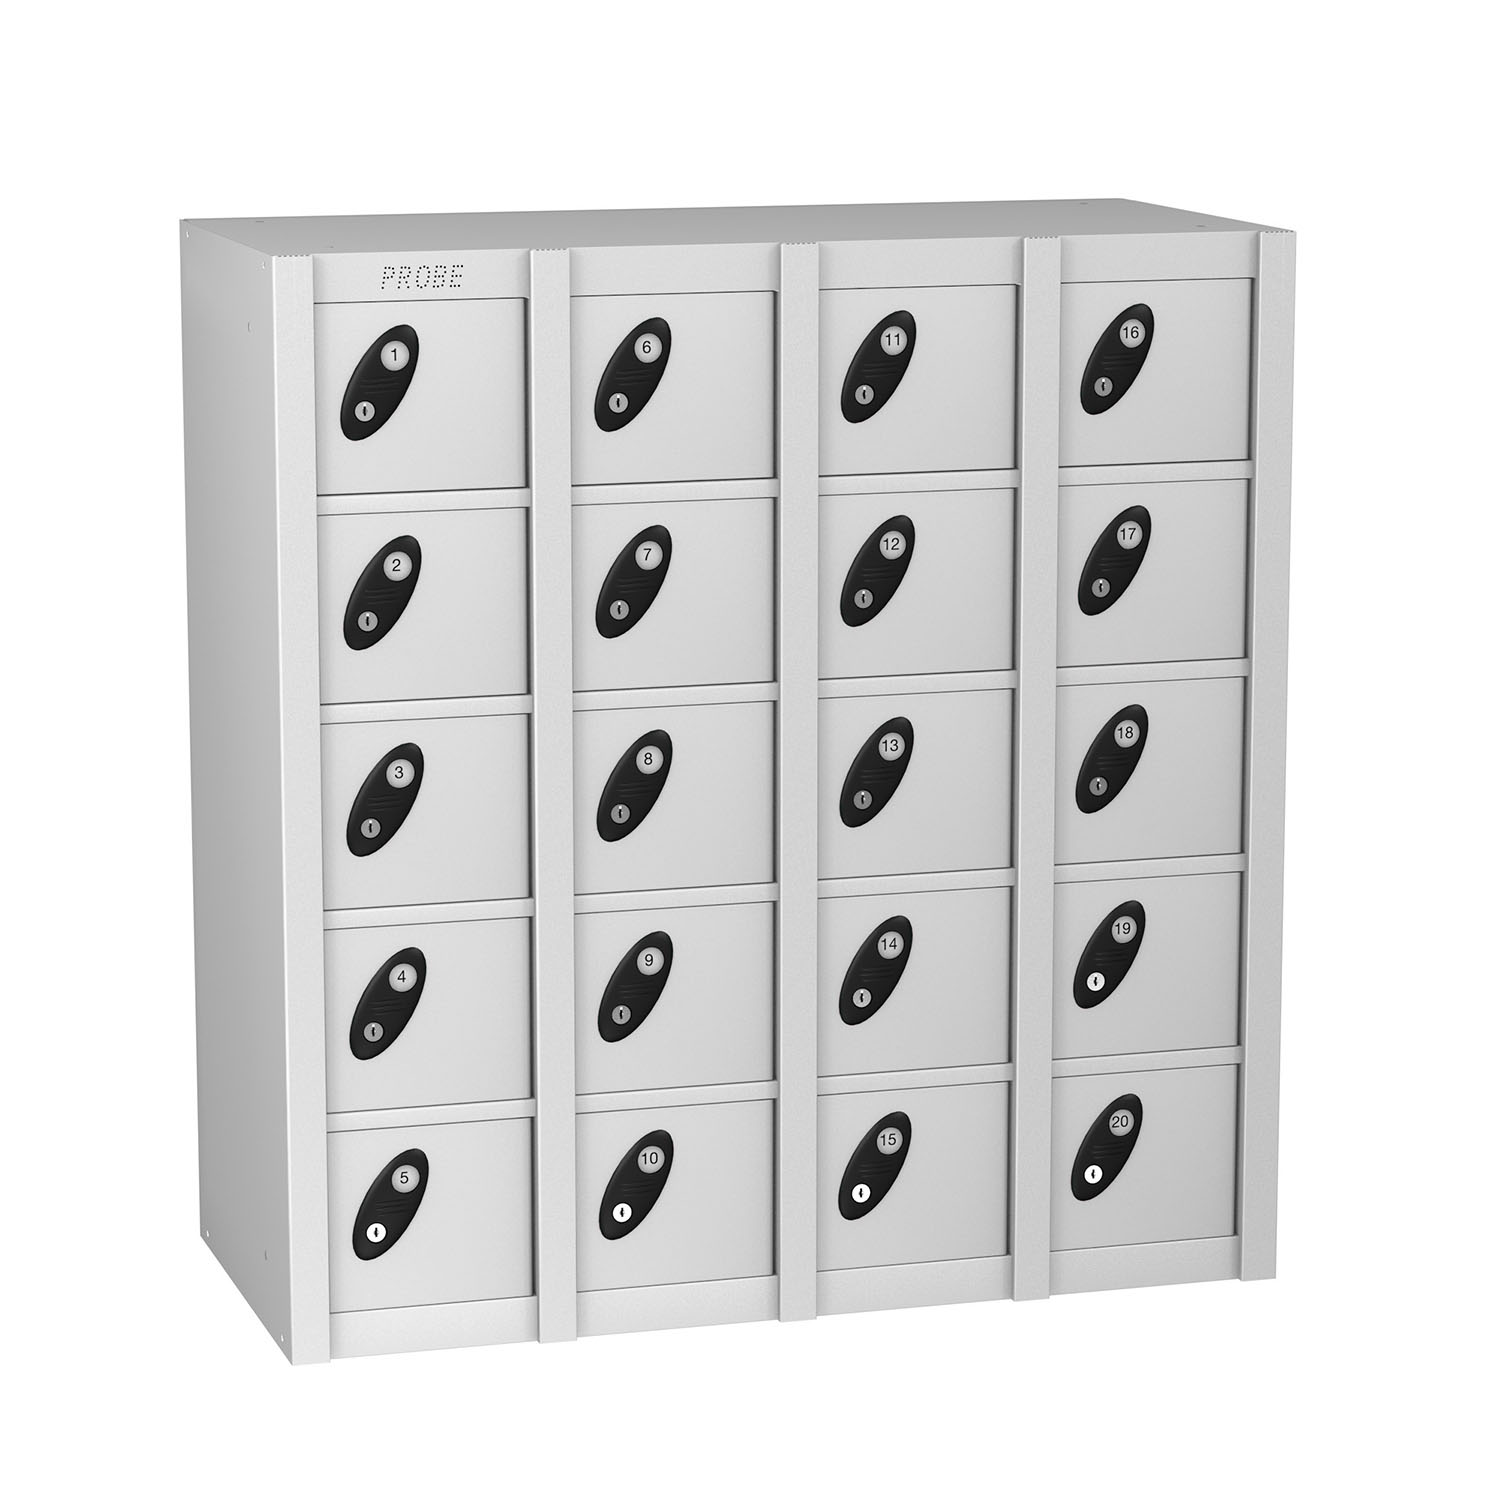 Probe 20 doors minibox lockers in white colour